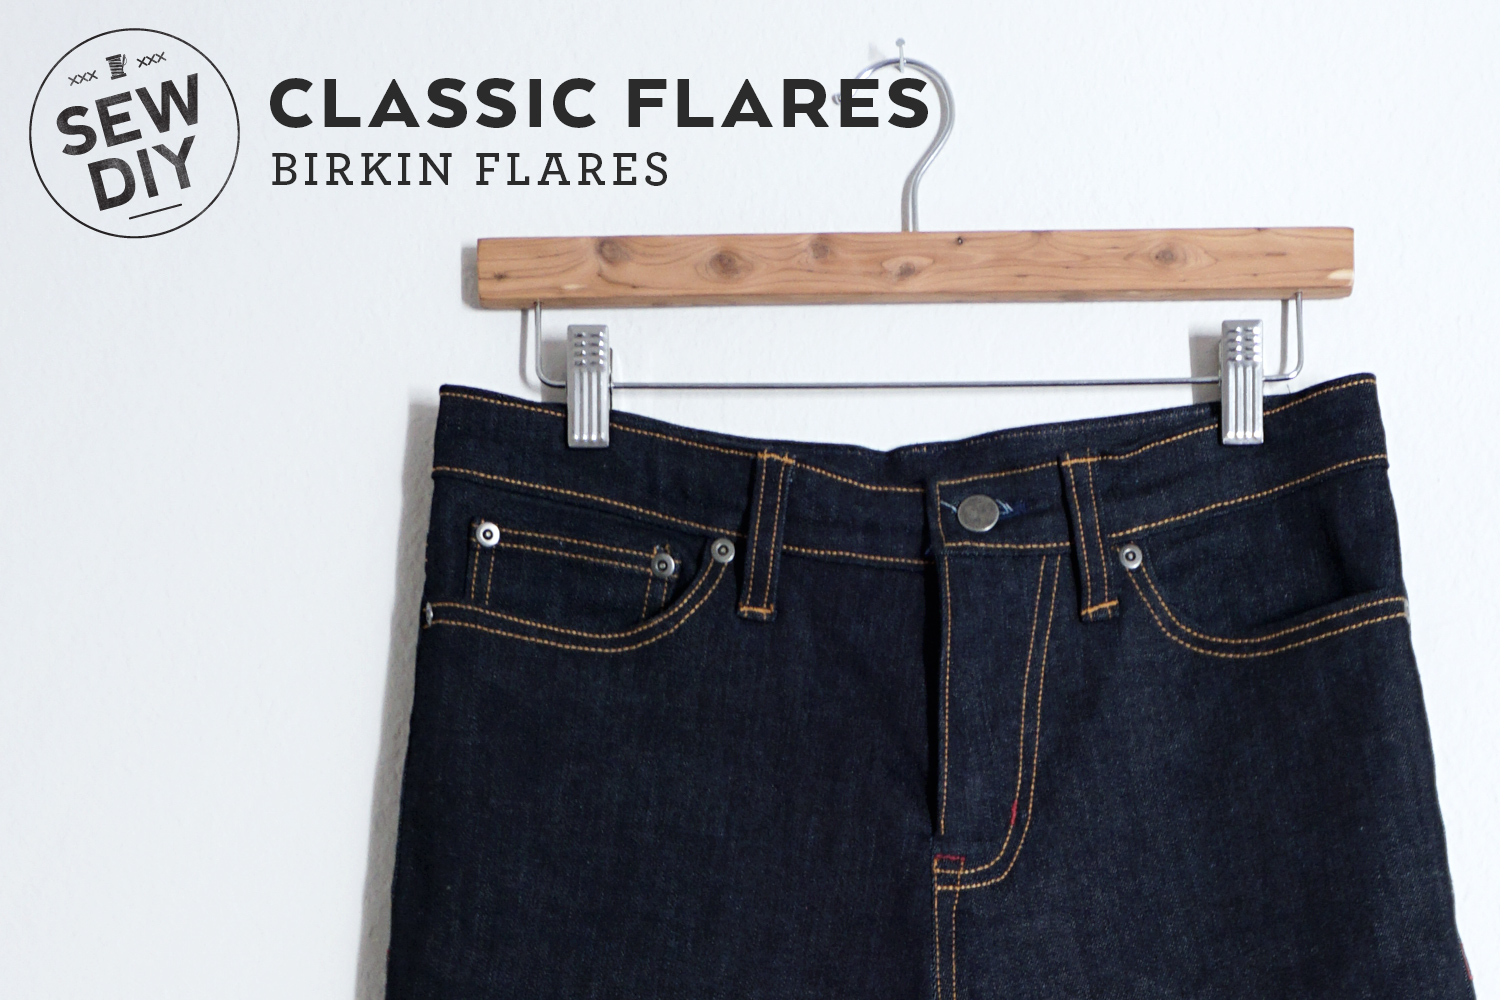 DIY Jeans with the Birkin Flares sewing pattern | Sew DIY